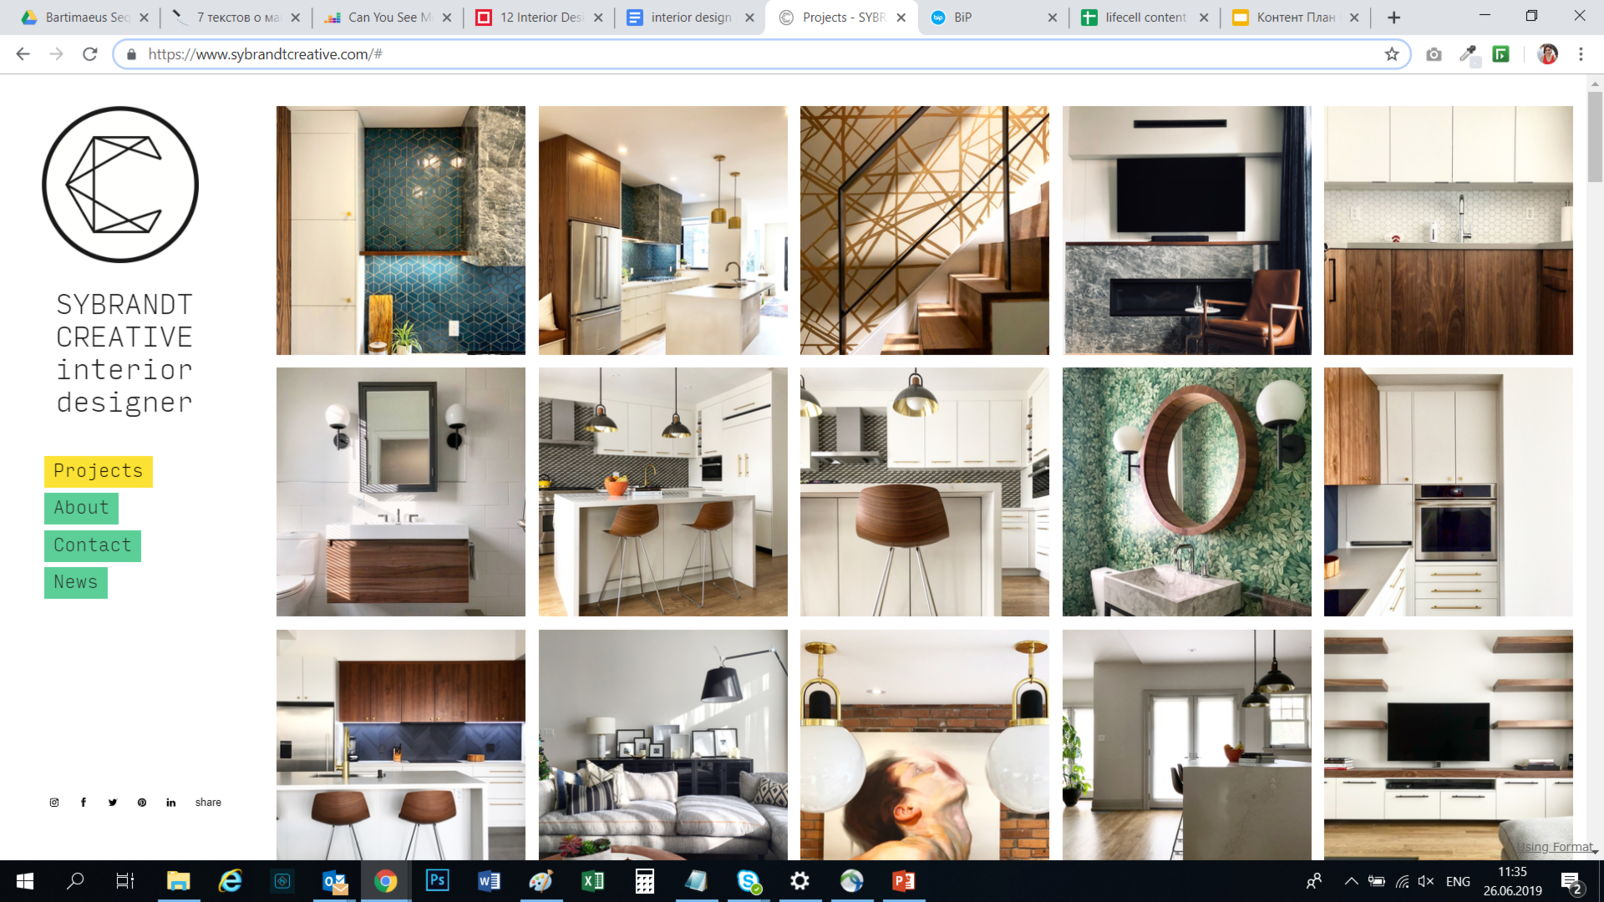 How To Make An Interior Design Portfolio With Examples Weblium Blog